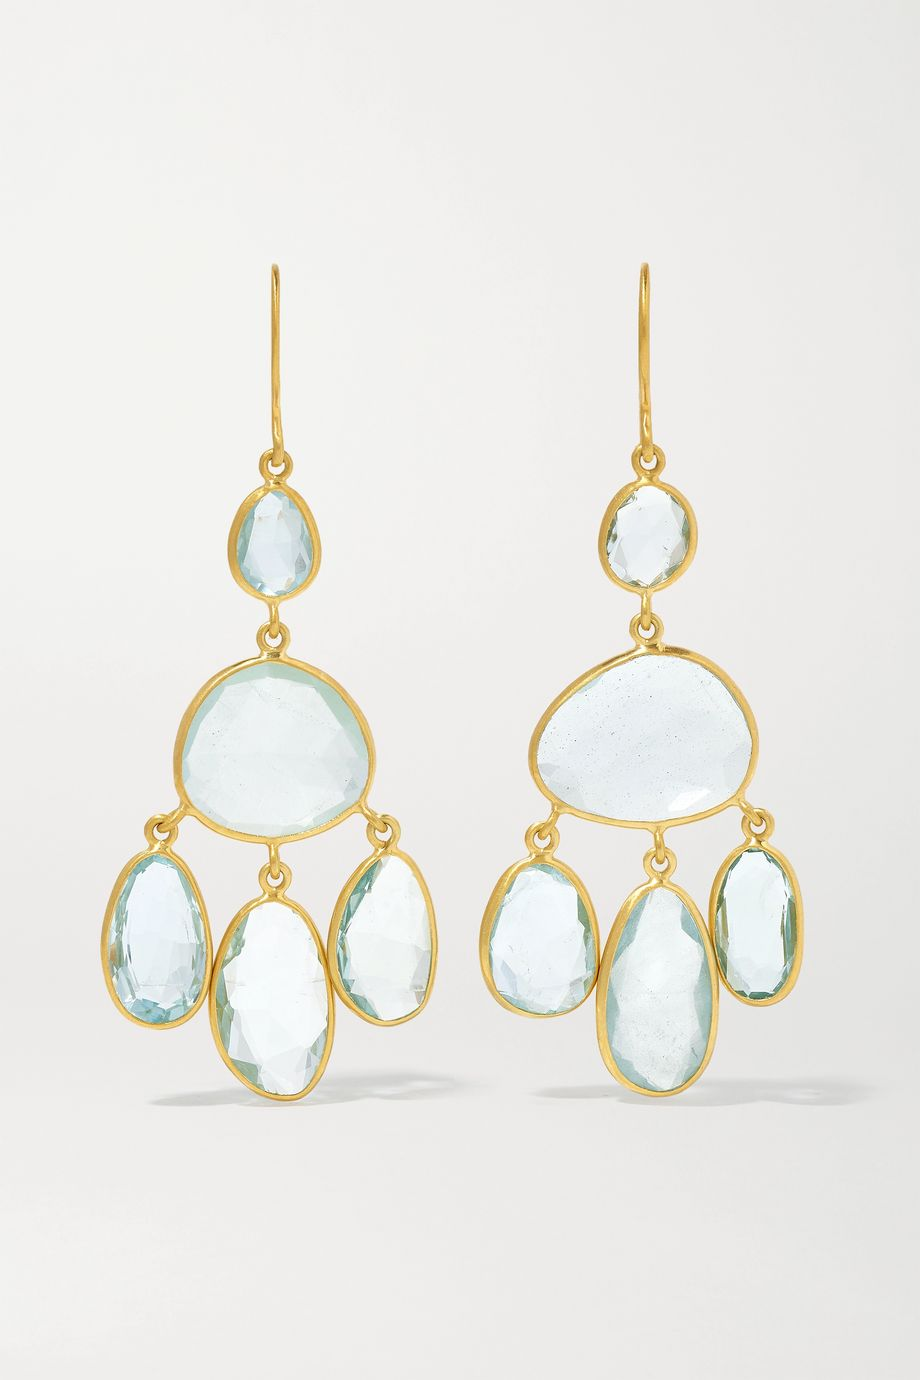 Pippa Small 18-karat gold aquamarine earrings